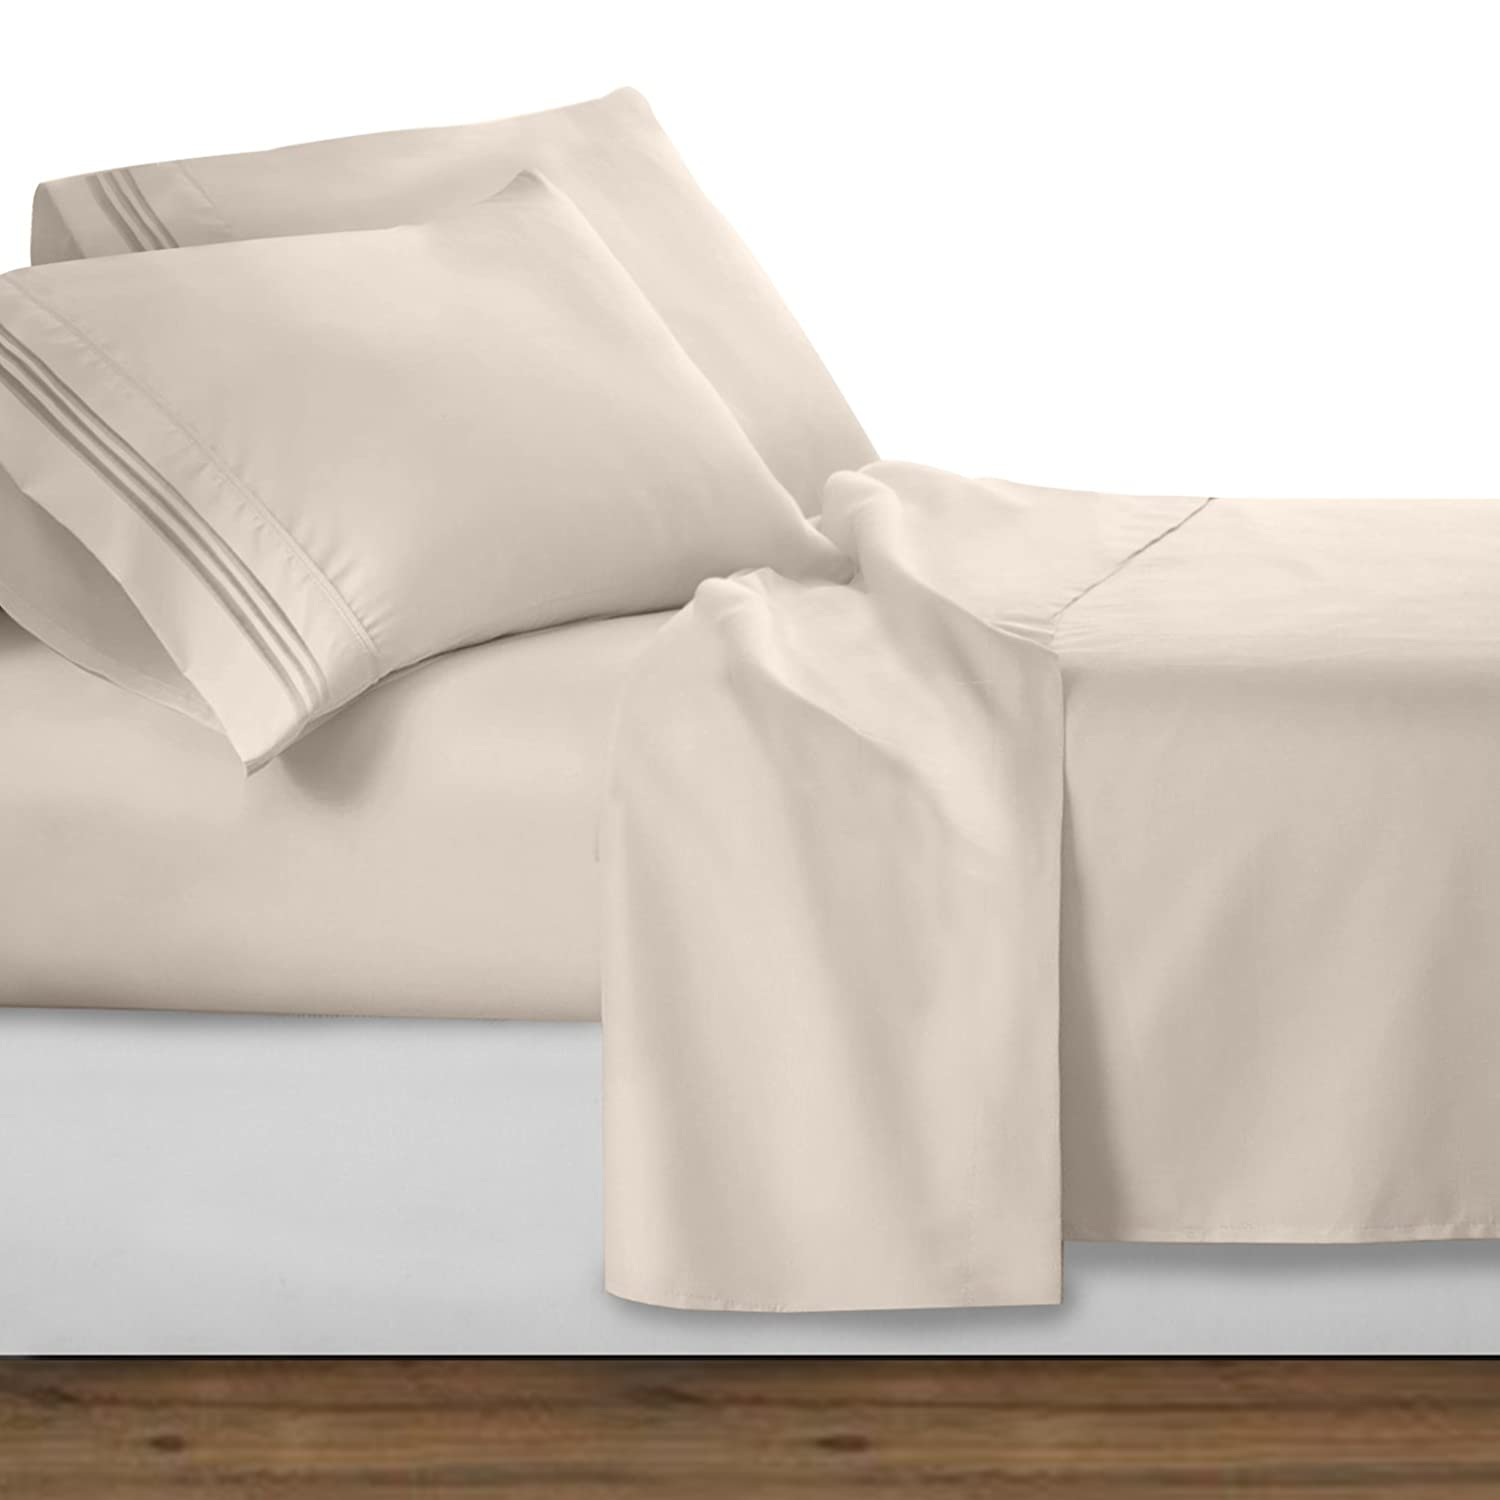 Clara Clark Premier 1800 Series 4pc Bed Sheet Set